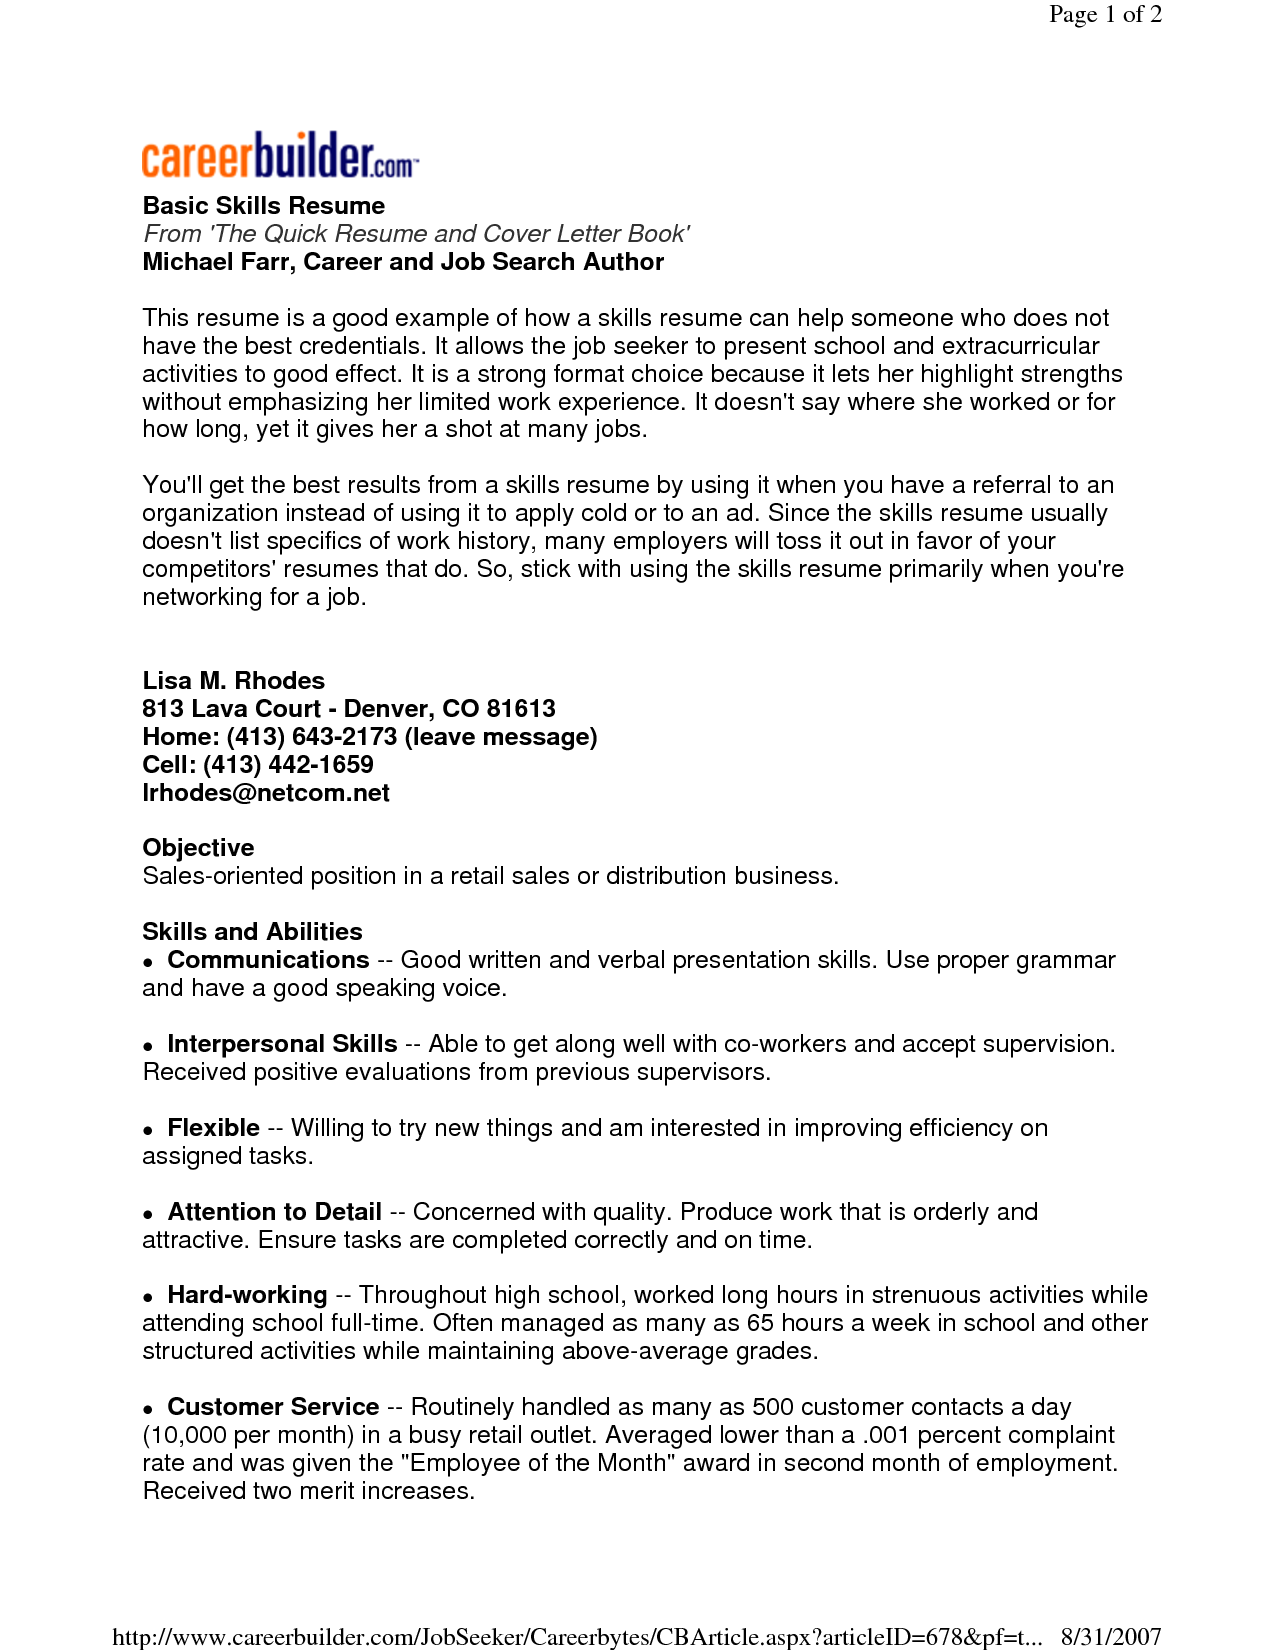 Resume Objective Sales Gorgeous Basic Resume Examples Skills  Httpwww.resumecareerbasic .